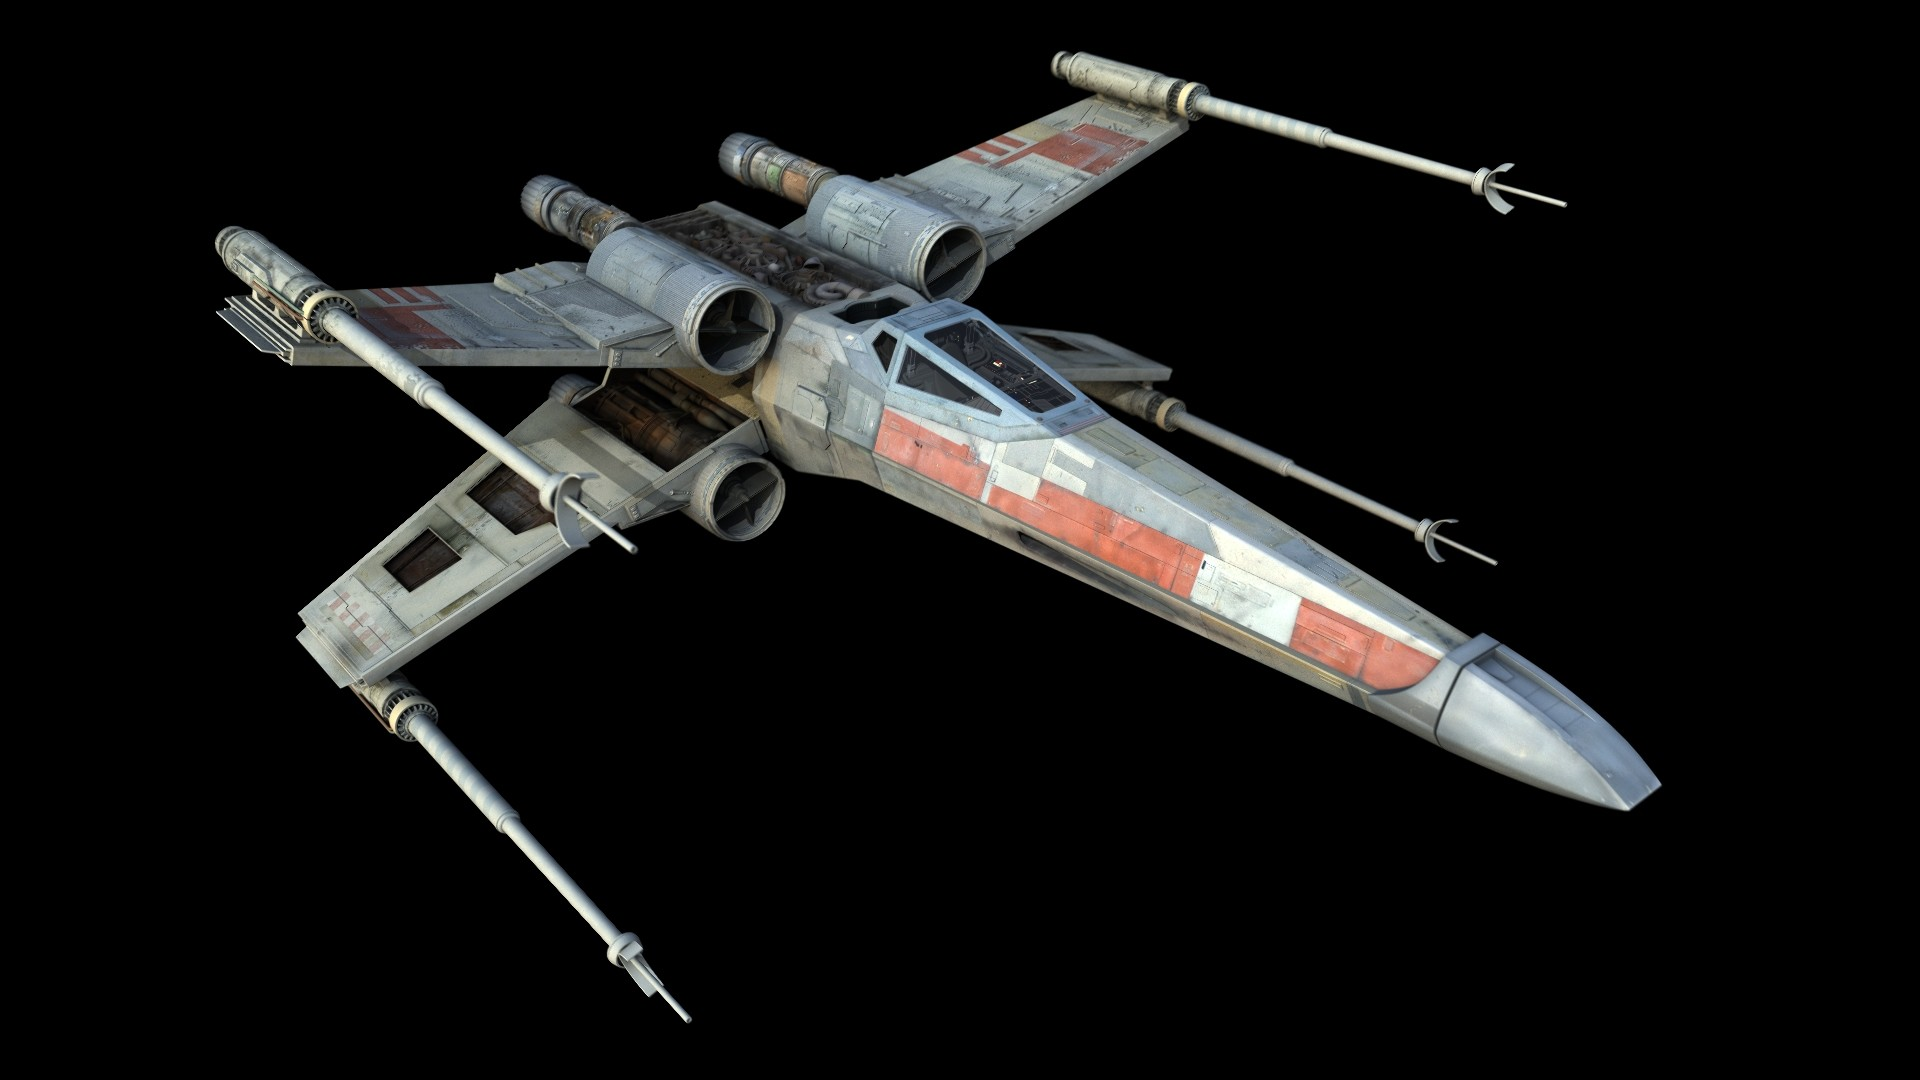 1920x1080 65B X-Wing Fighter by WoodyLWG on DeviantArt